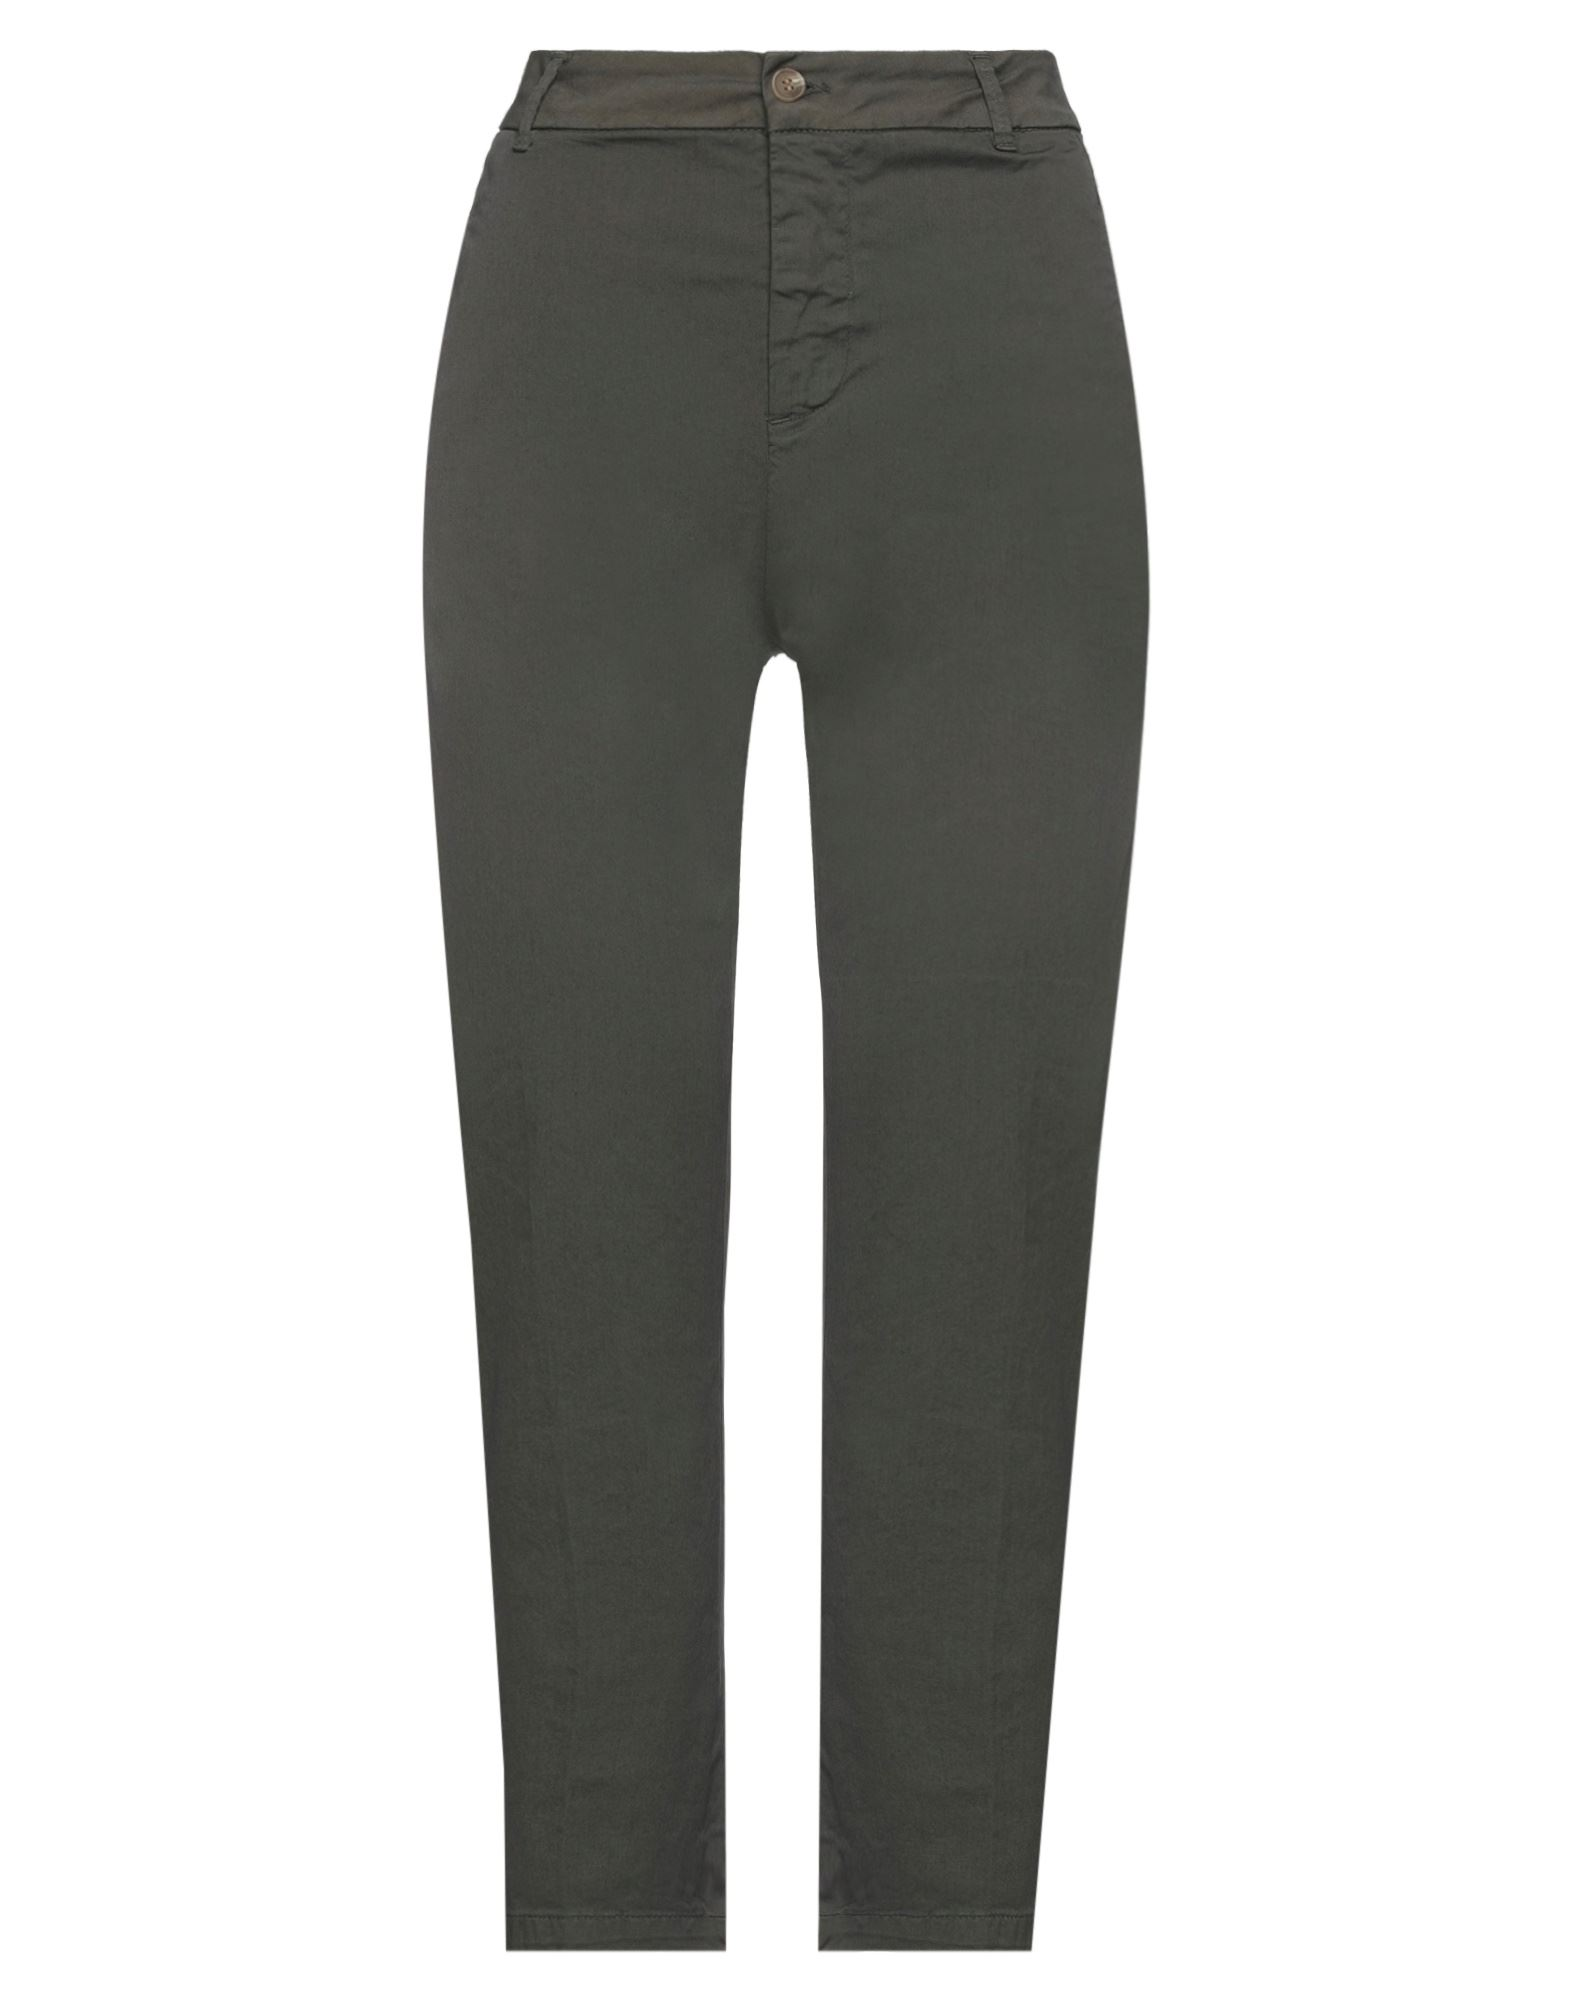 Ab/soul Casual Pants In Military Green